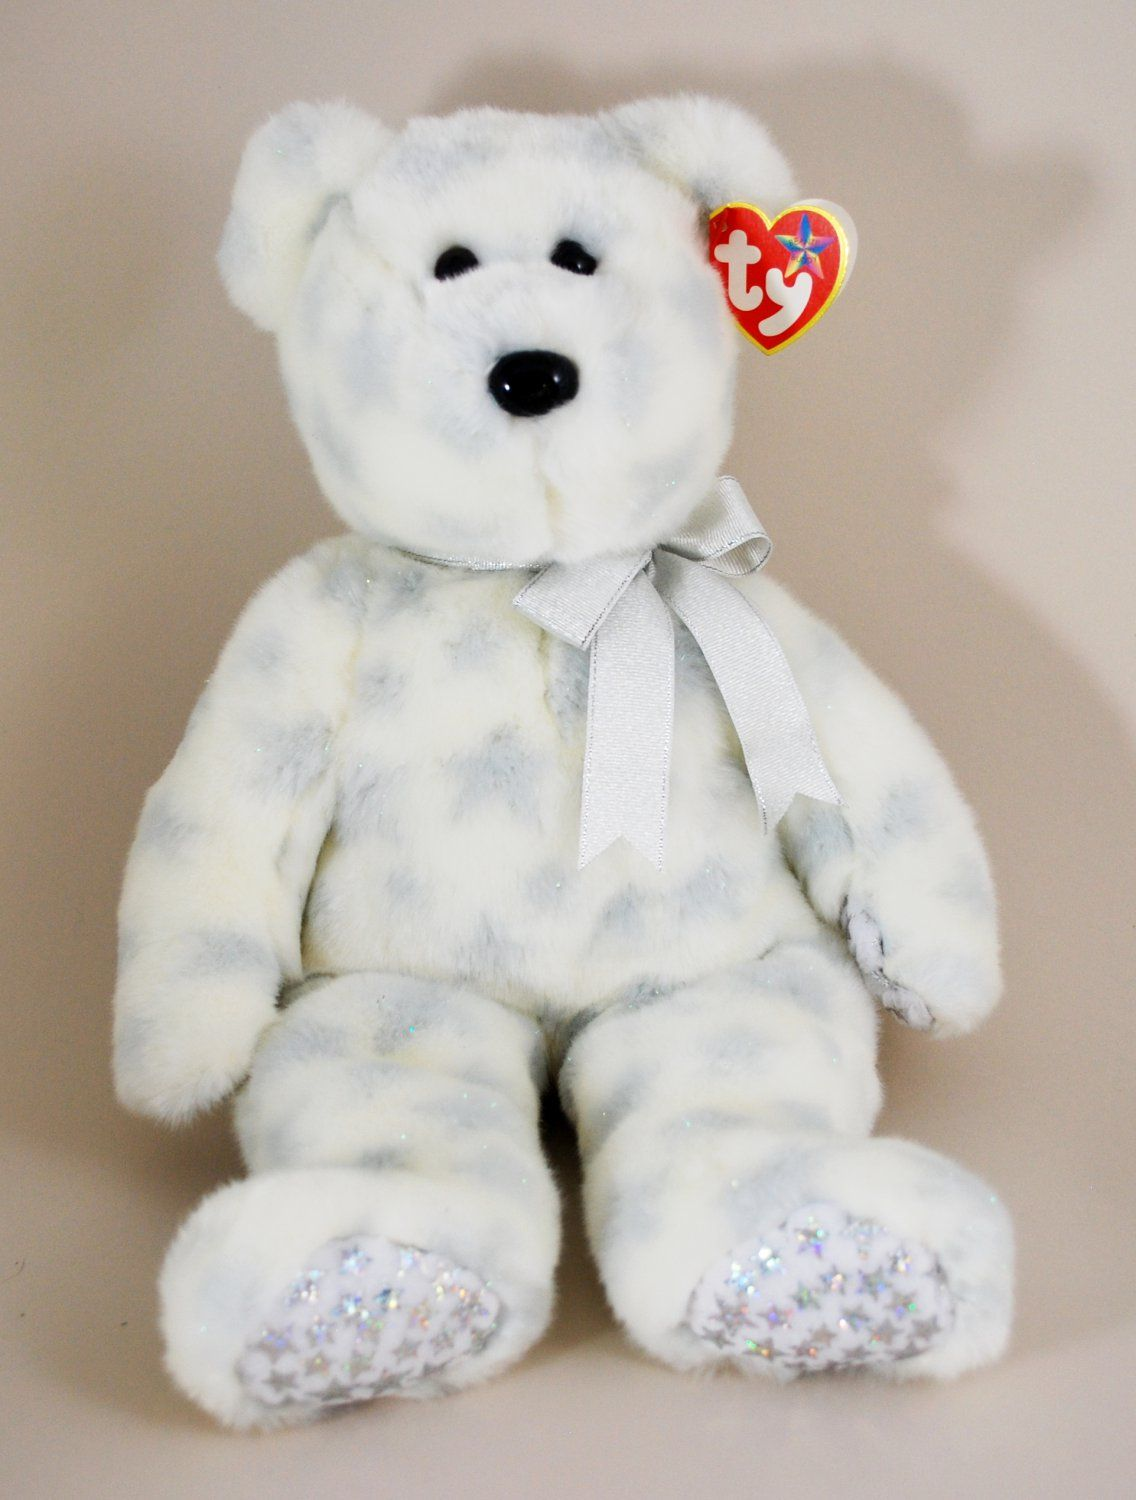 Ty The Beginning bear beanie buddy is a white and silver plush bear with  silver stars on his paw and feet pads. He has a silver ribbon around his  neck. 7cec7bae62e